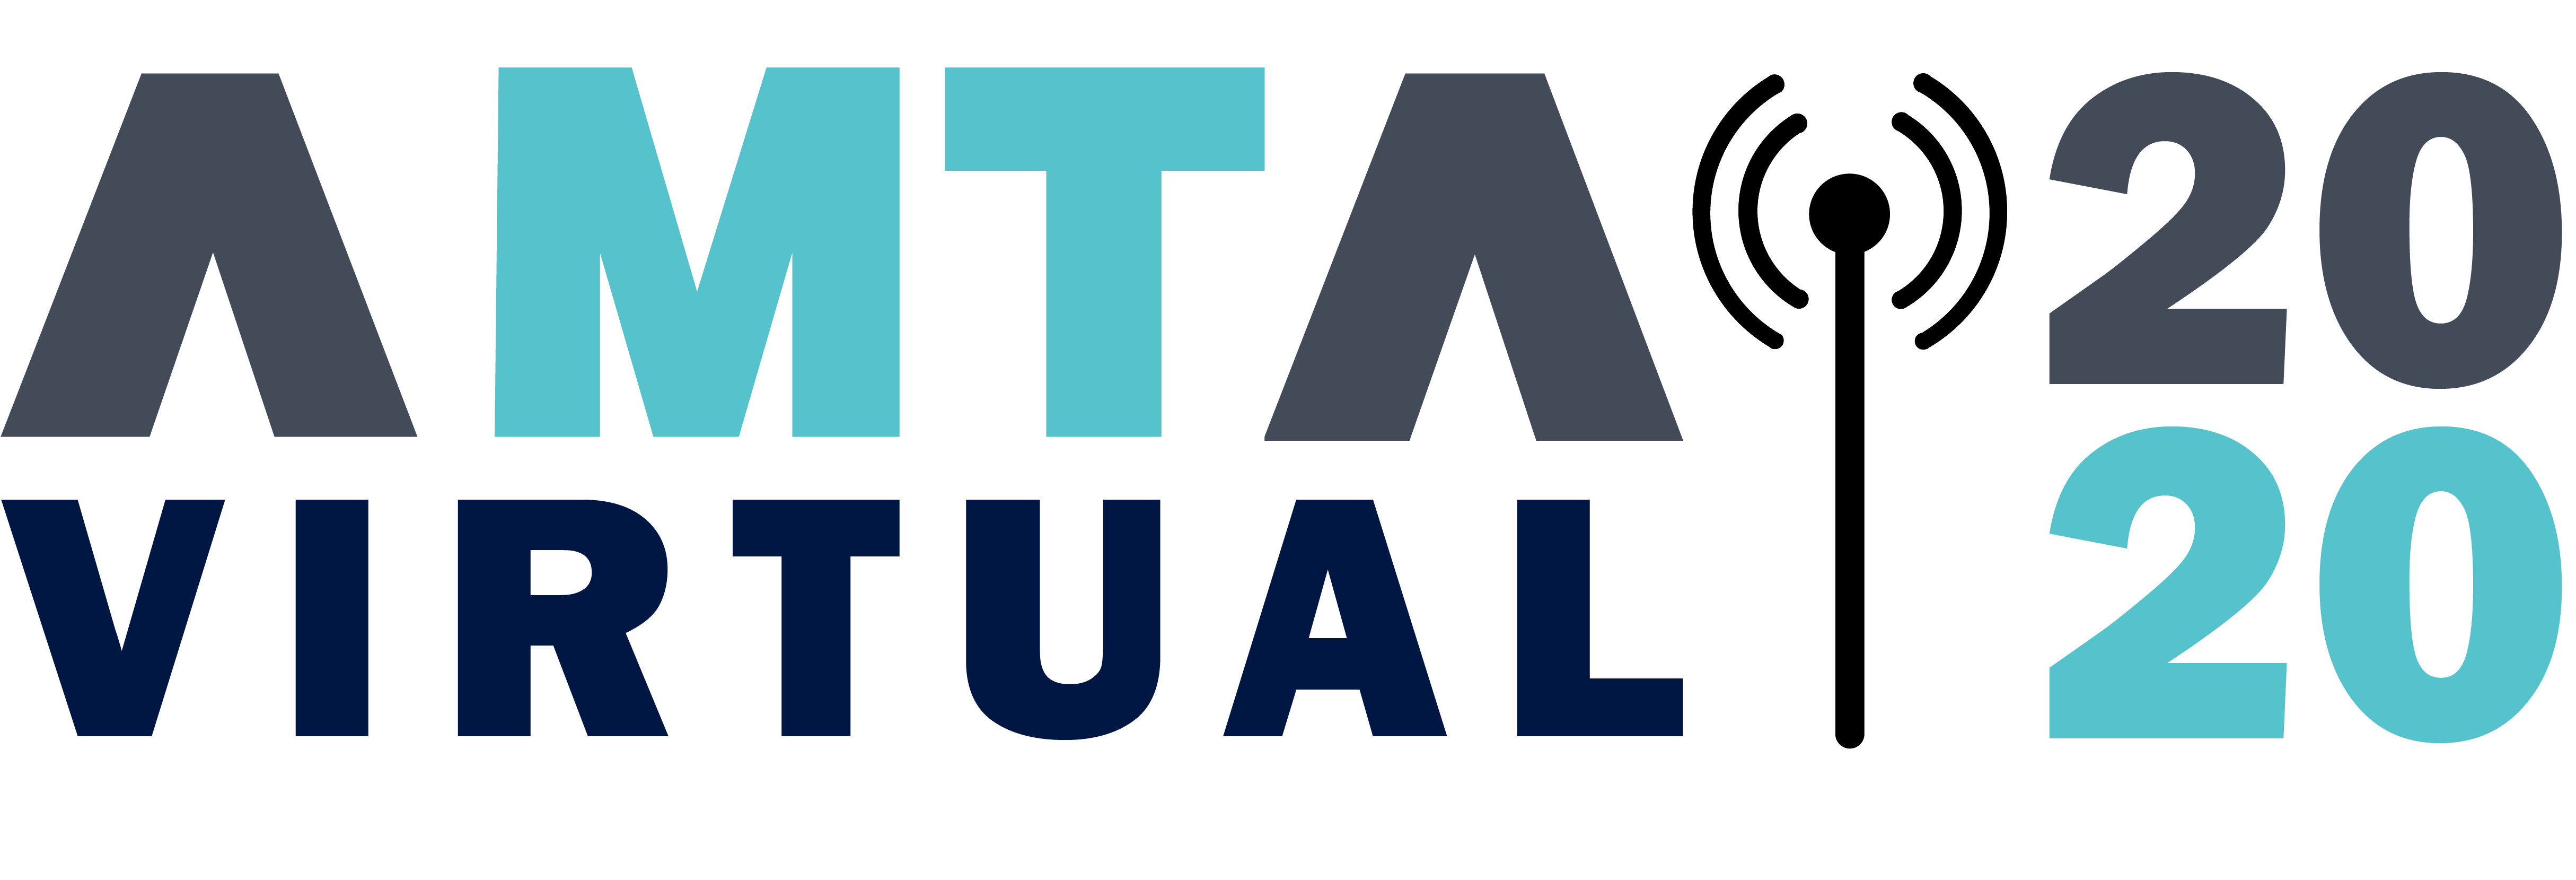 Virtual AMTA 2020: Registration is Now Open and Conference Program is Available